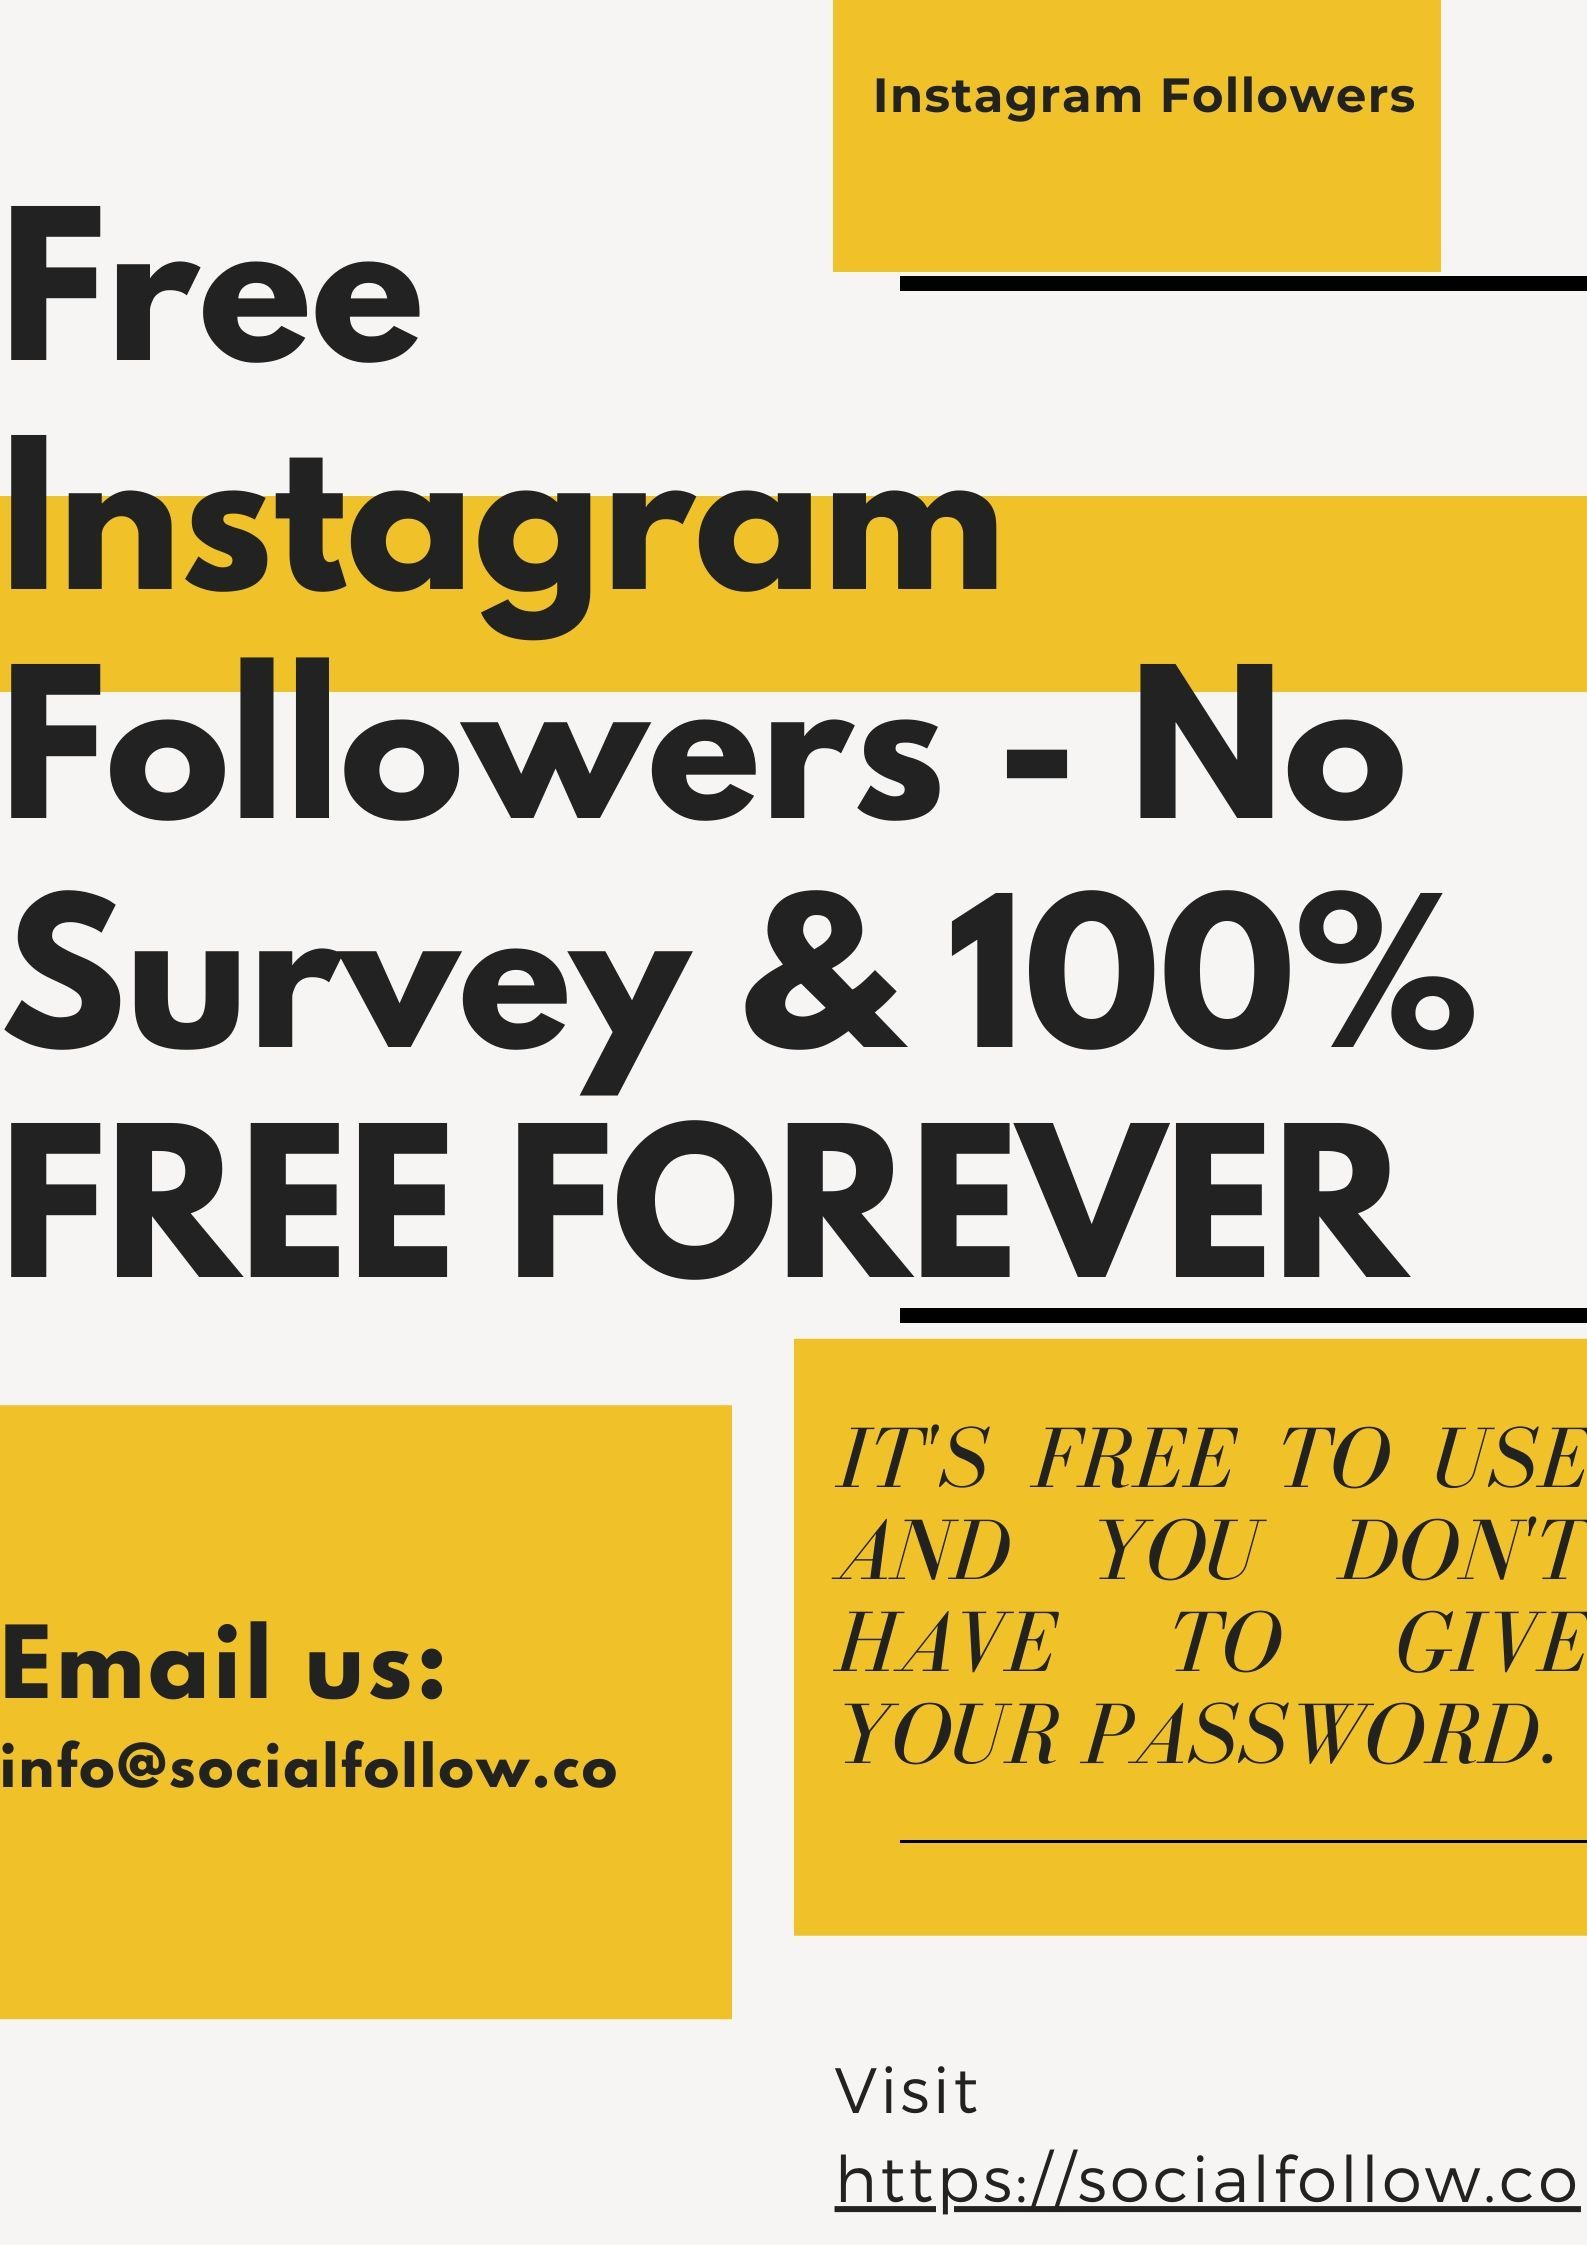 Do you use Instagram for your business, but not getting benefits because your followers are very few? If yes, Socialfollow can help you. We provide Instagram #followersfree. Install our application and get results fast now.